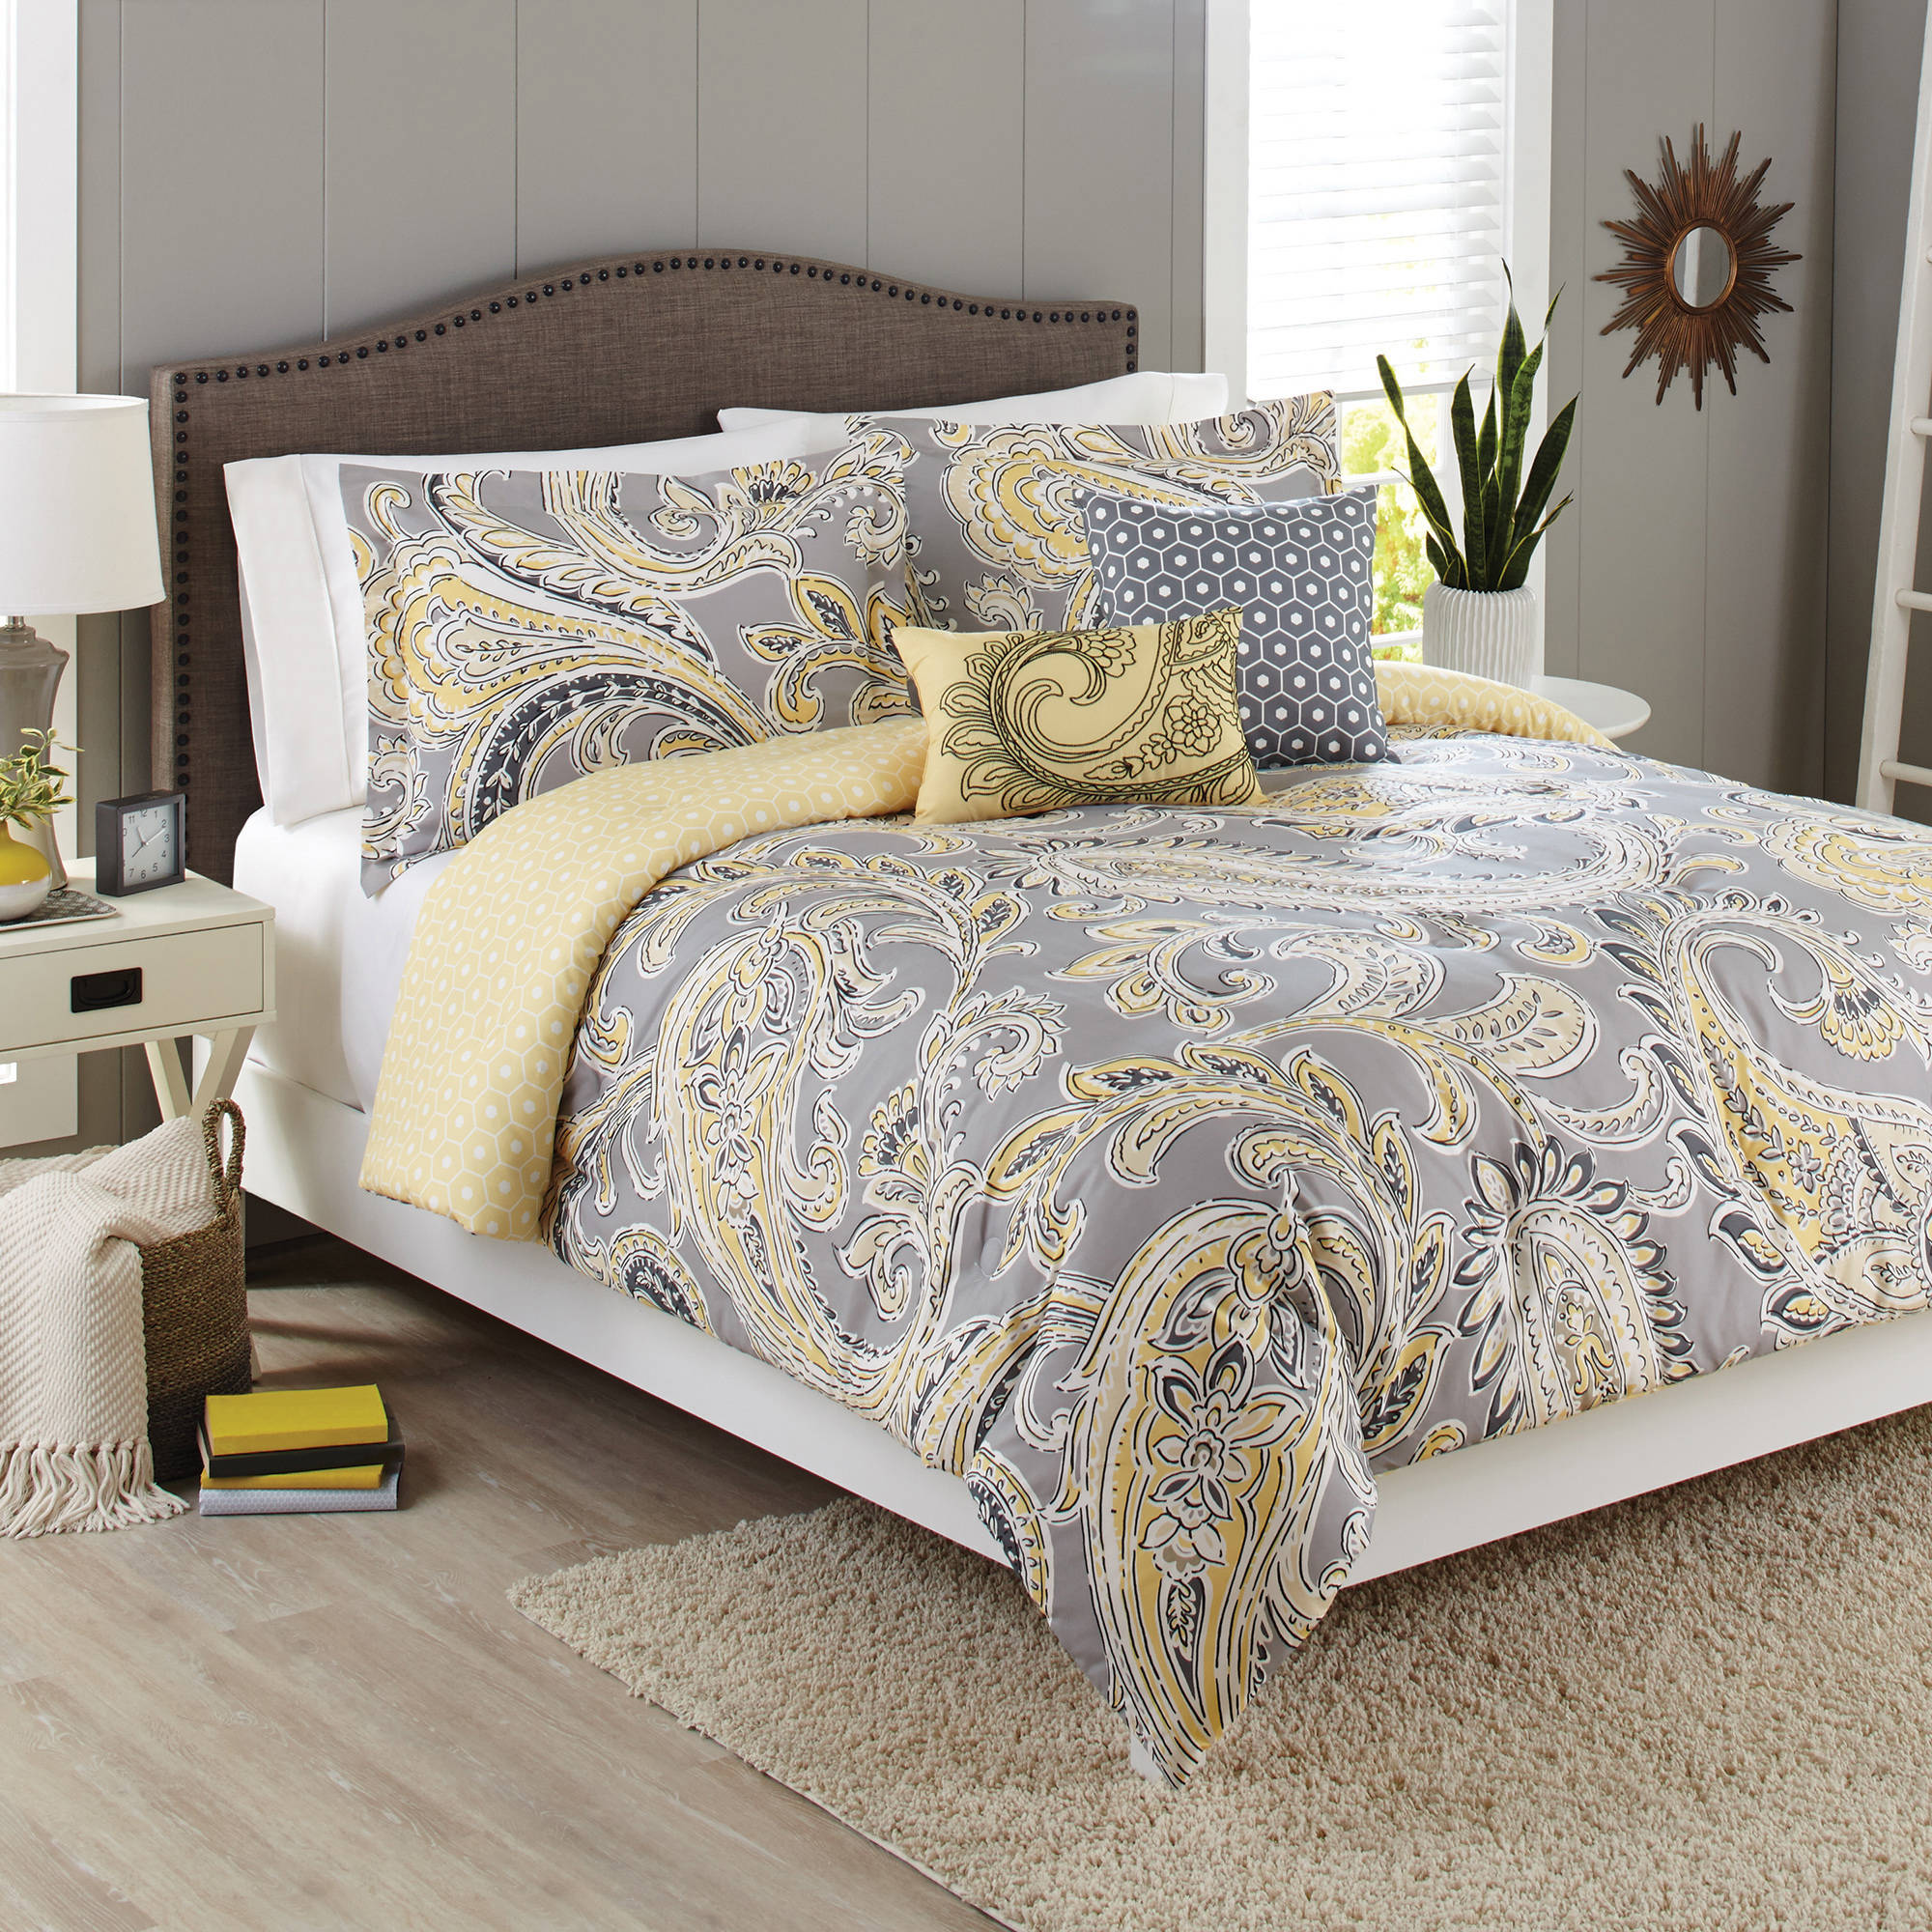 Realtree Bedding Comforter Set - Walmart.com : bedding quilt sets - Adamdwight.com